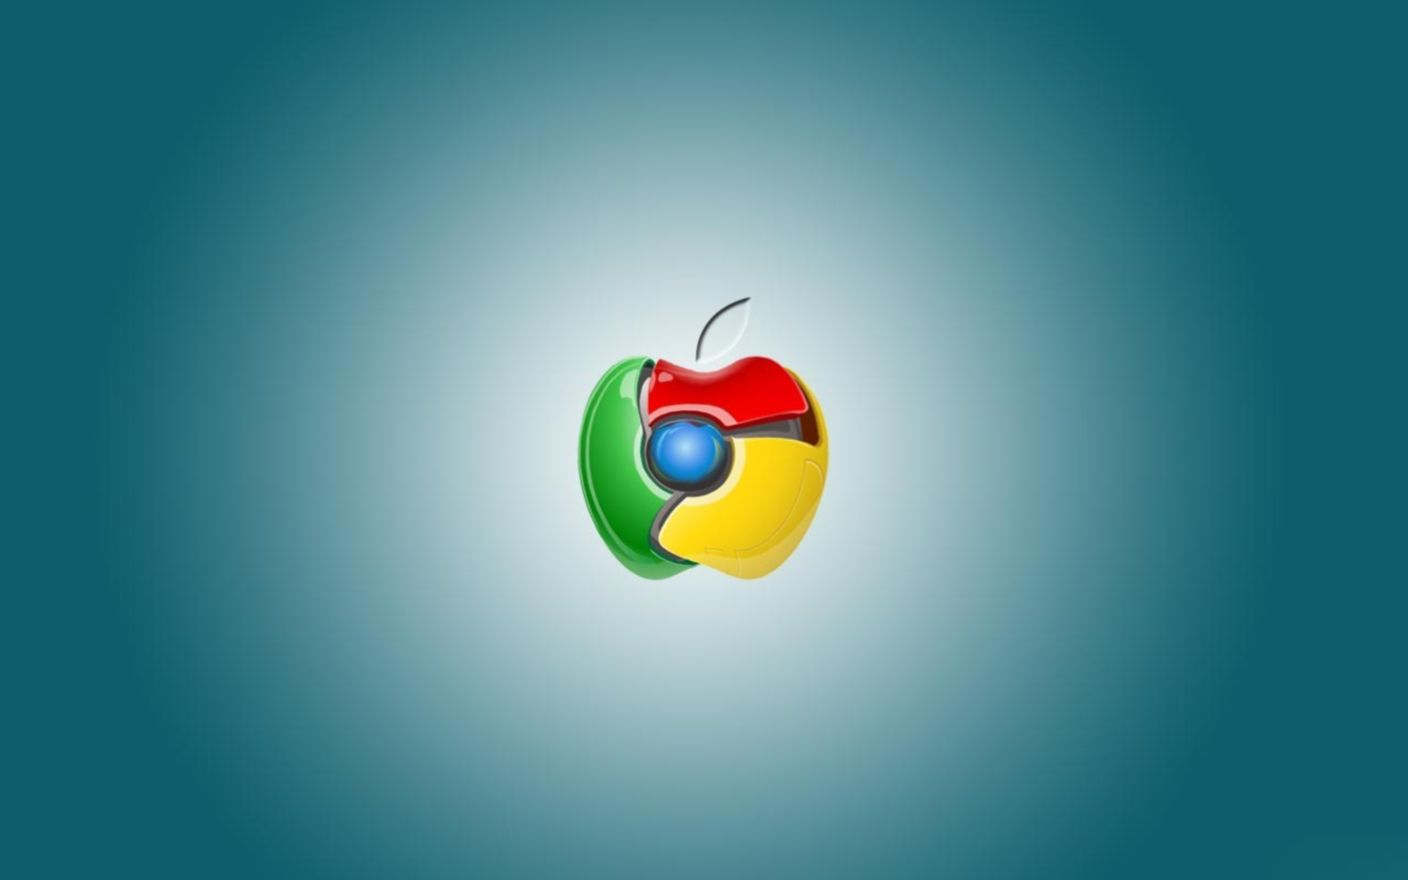 Download free HD Google Chrome HD For Mac Wallpaper, image